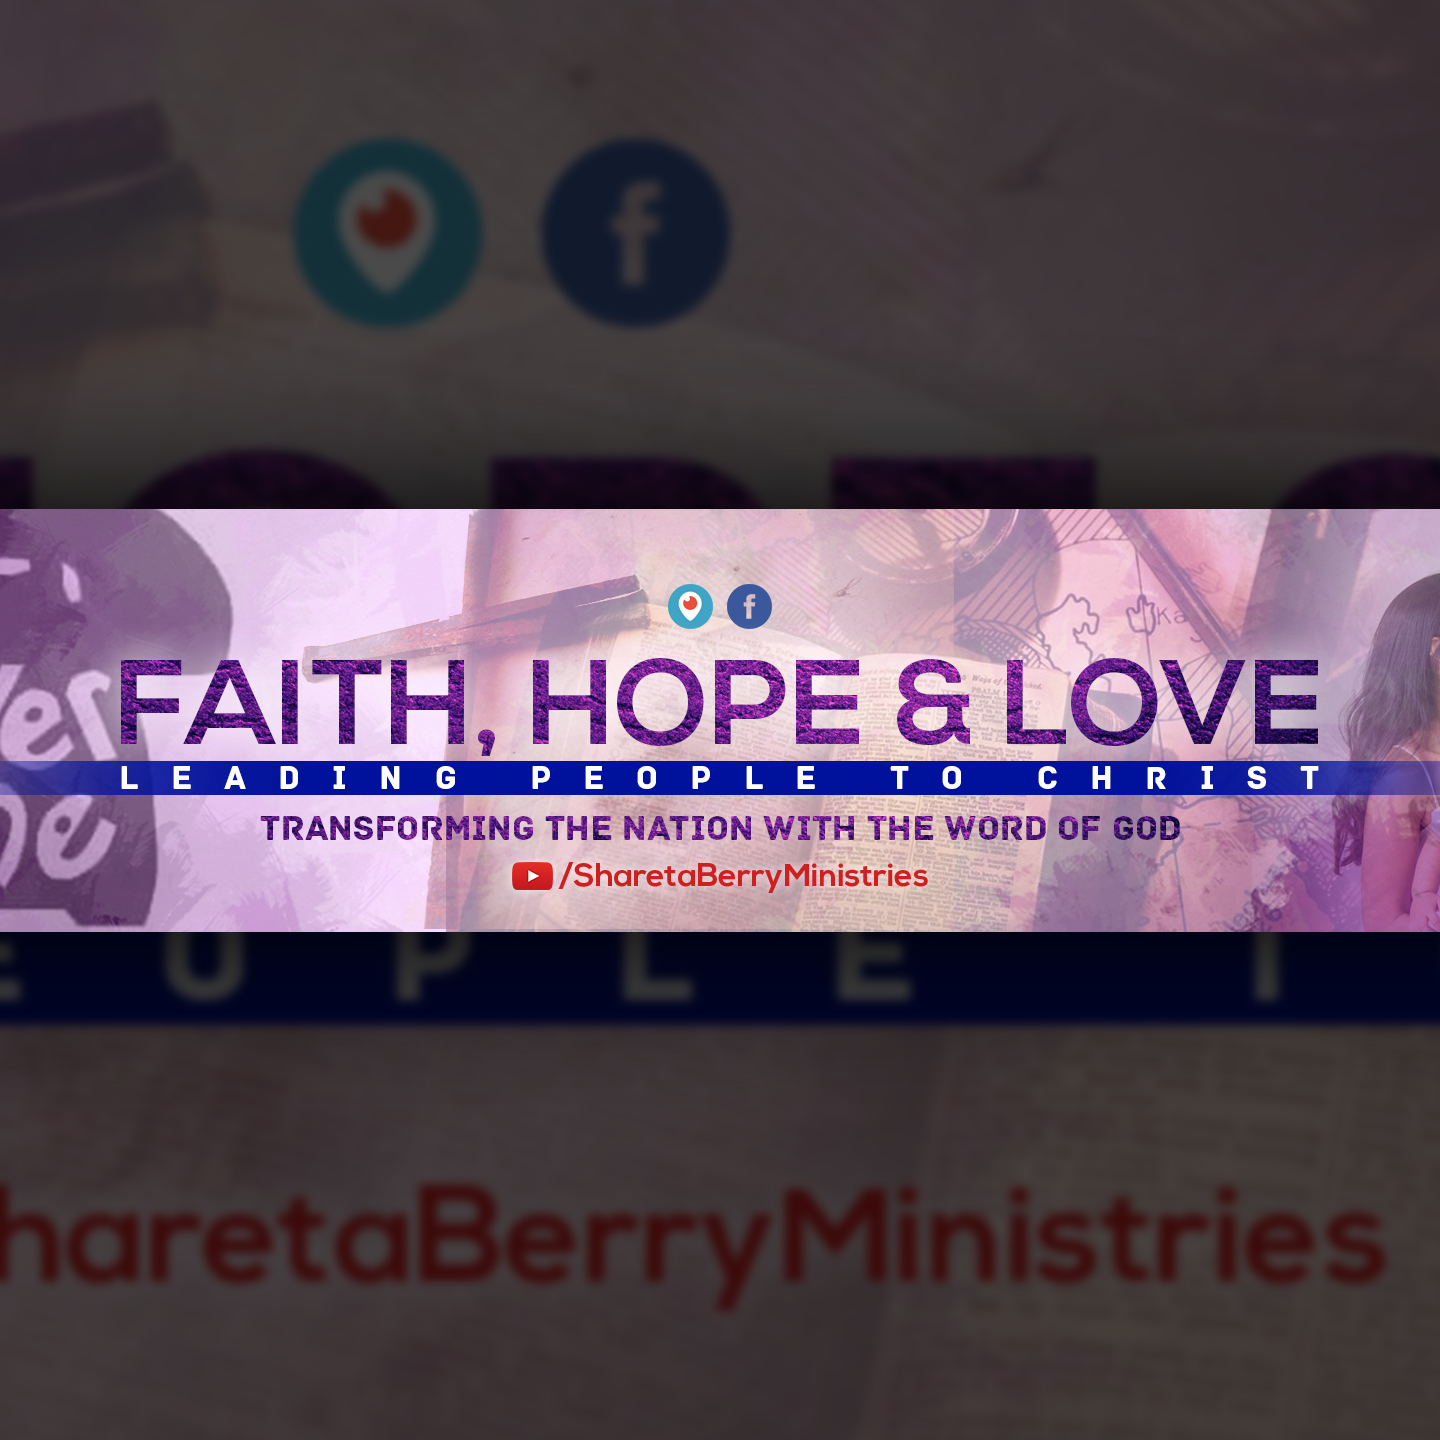 Faith, Hope & Love Leading People To Christ